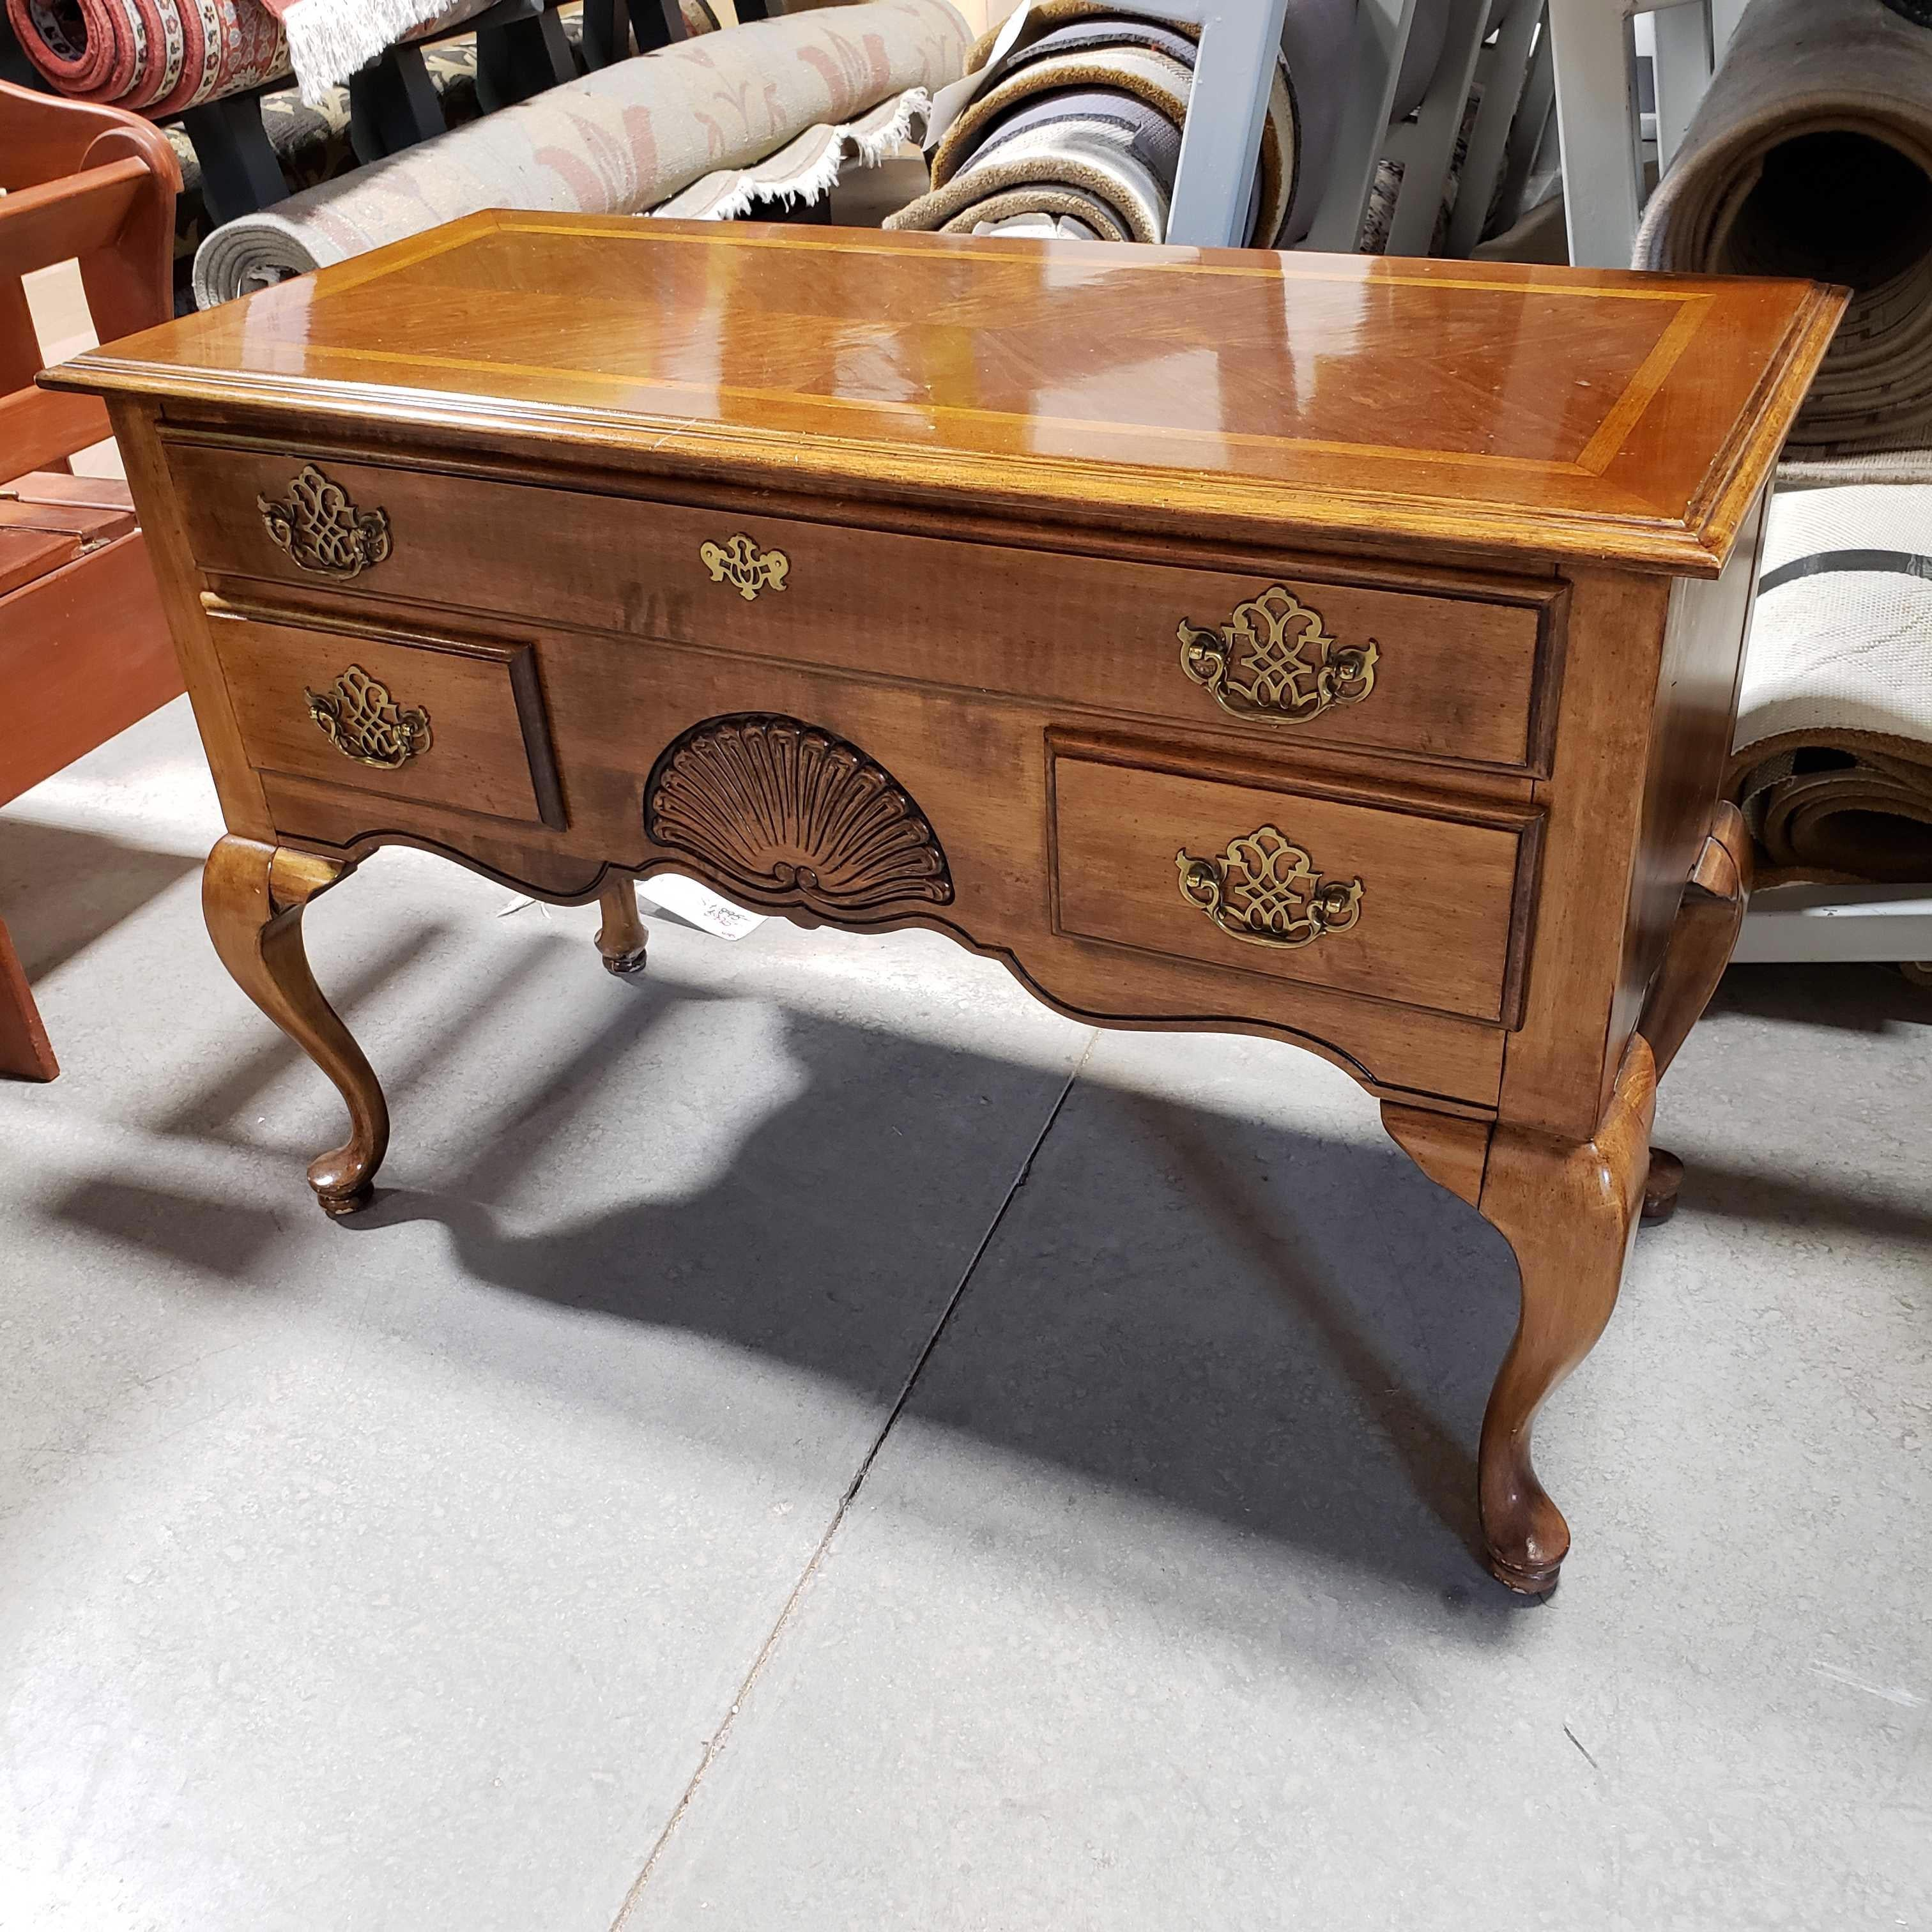 "40""x 18""x 27"" Wood 3 Drawer with Bowed Legs Chest Dresser"